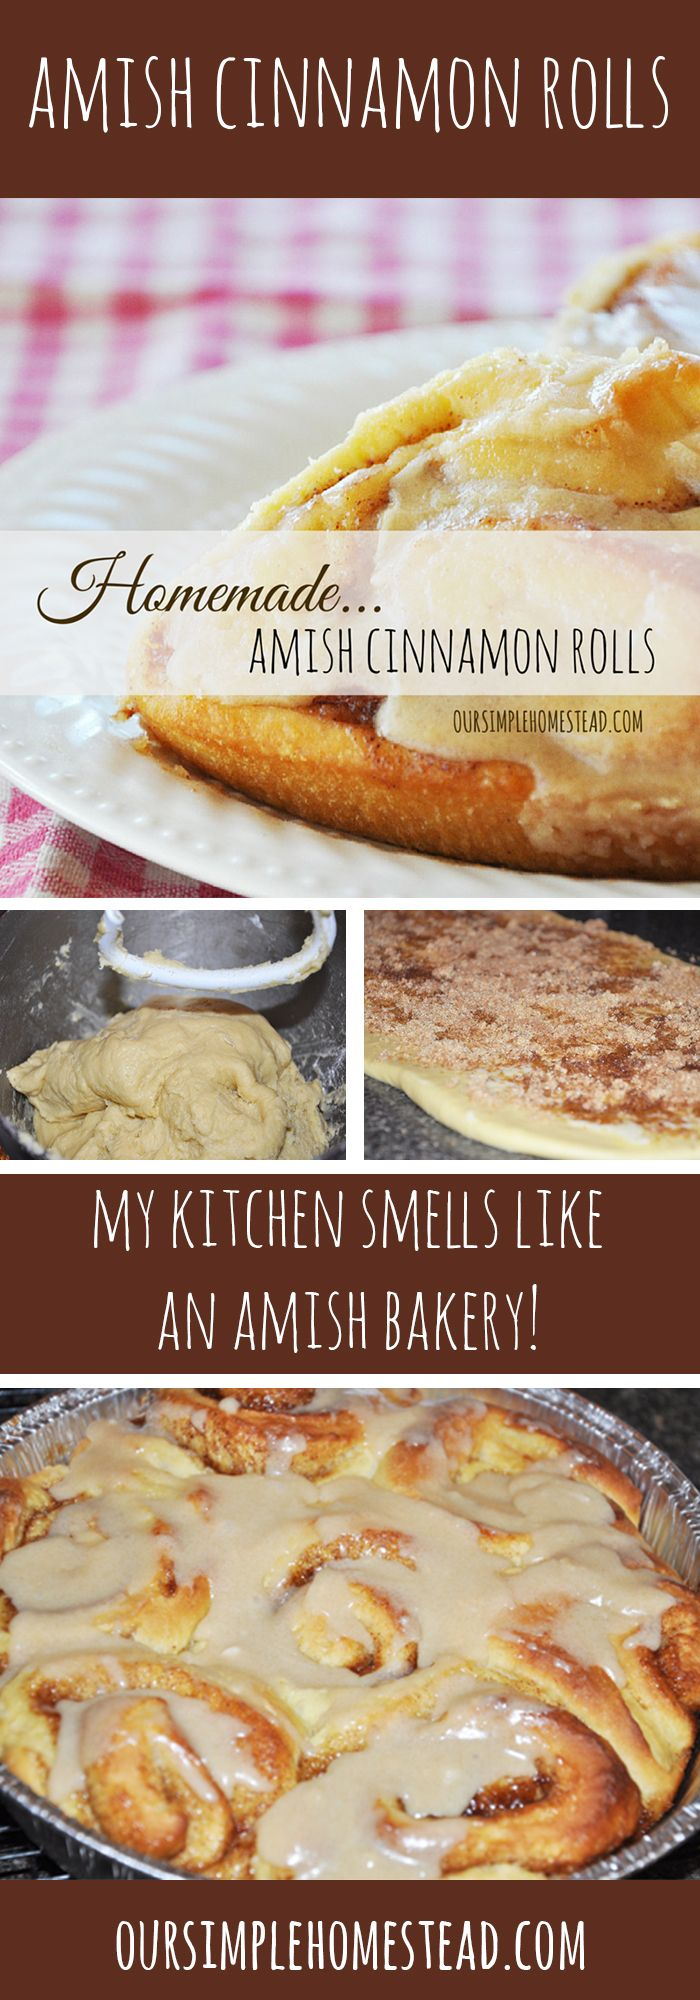 best 25+ old house smells ideas on pinterest | deodorize house